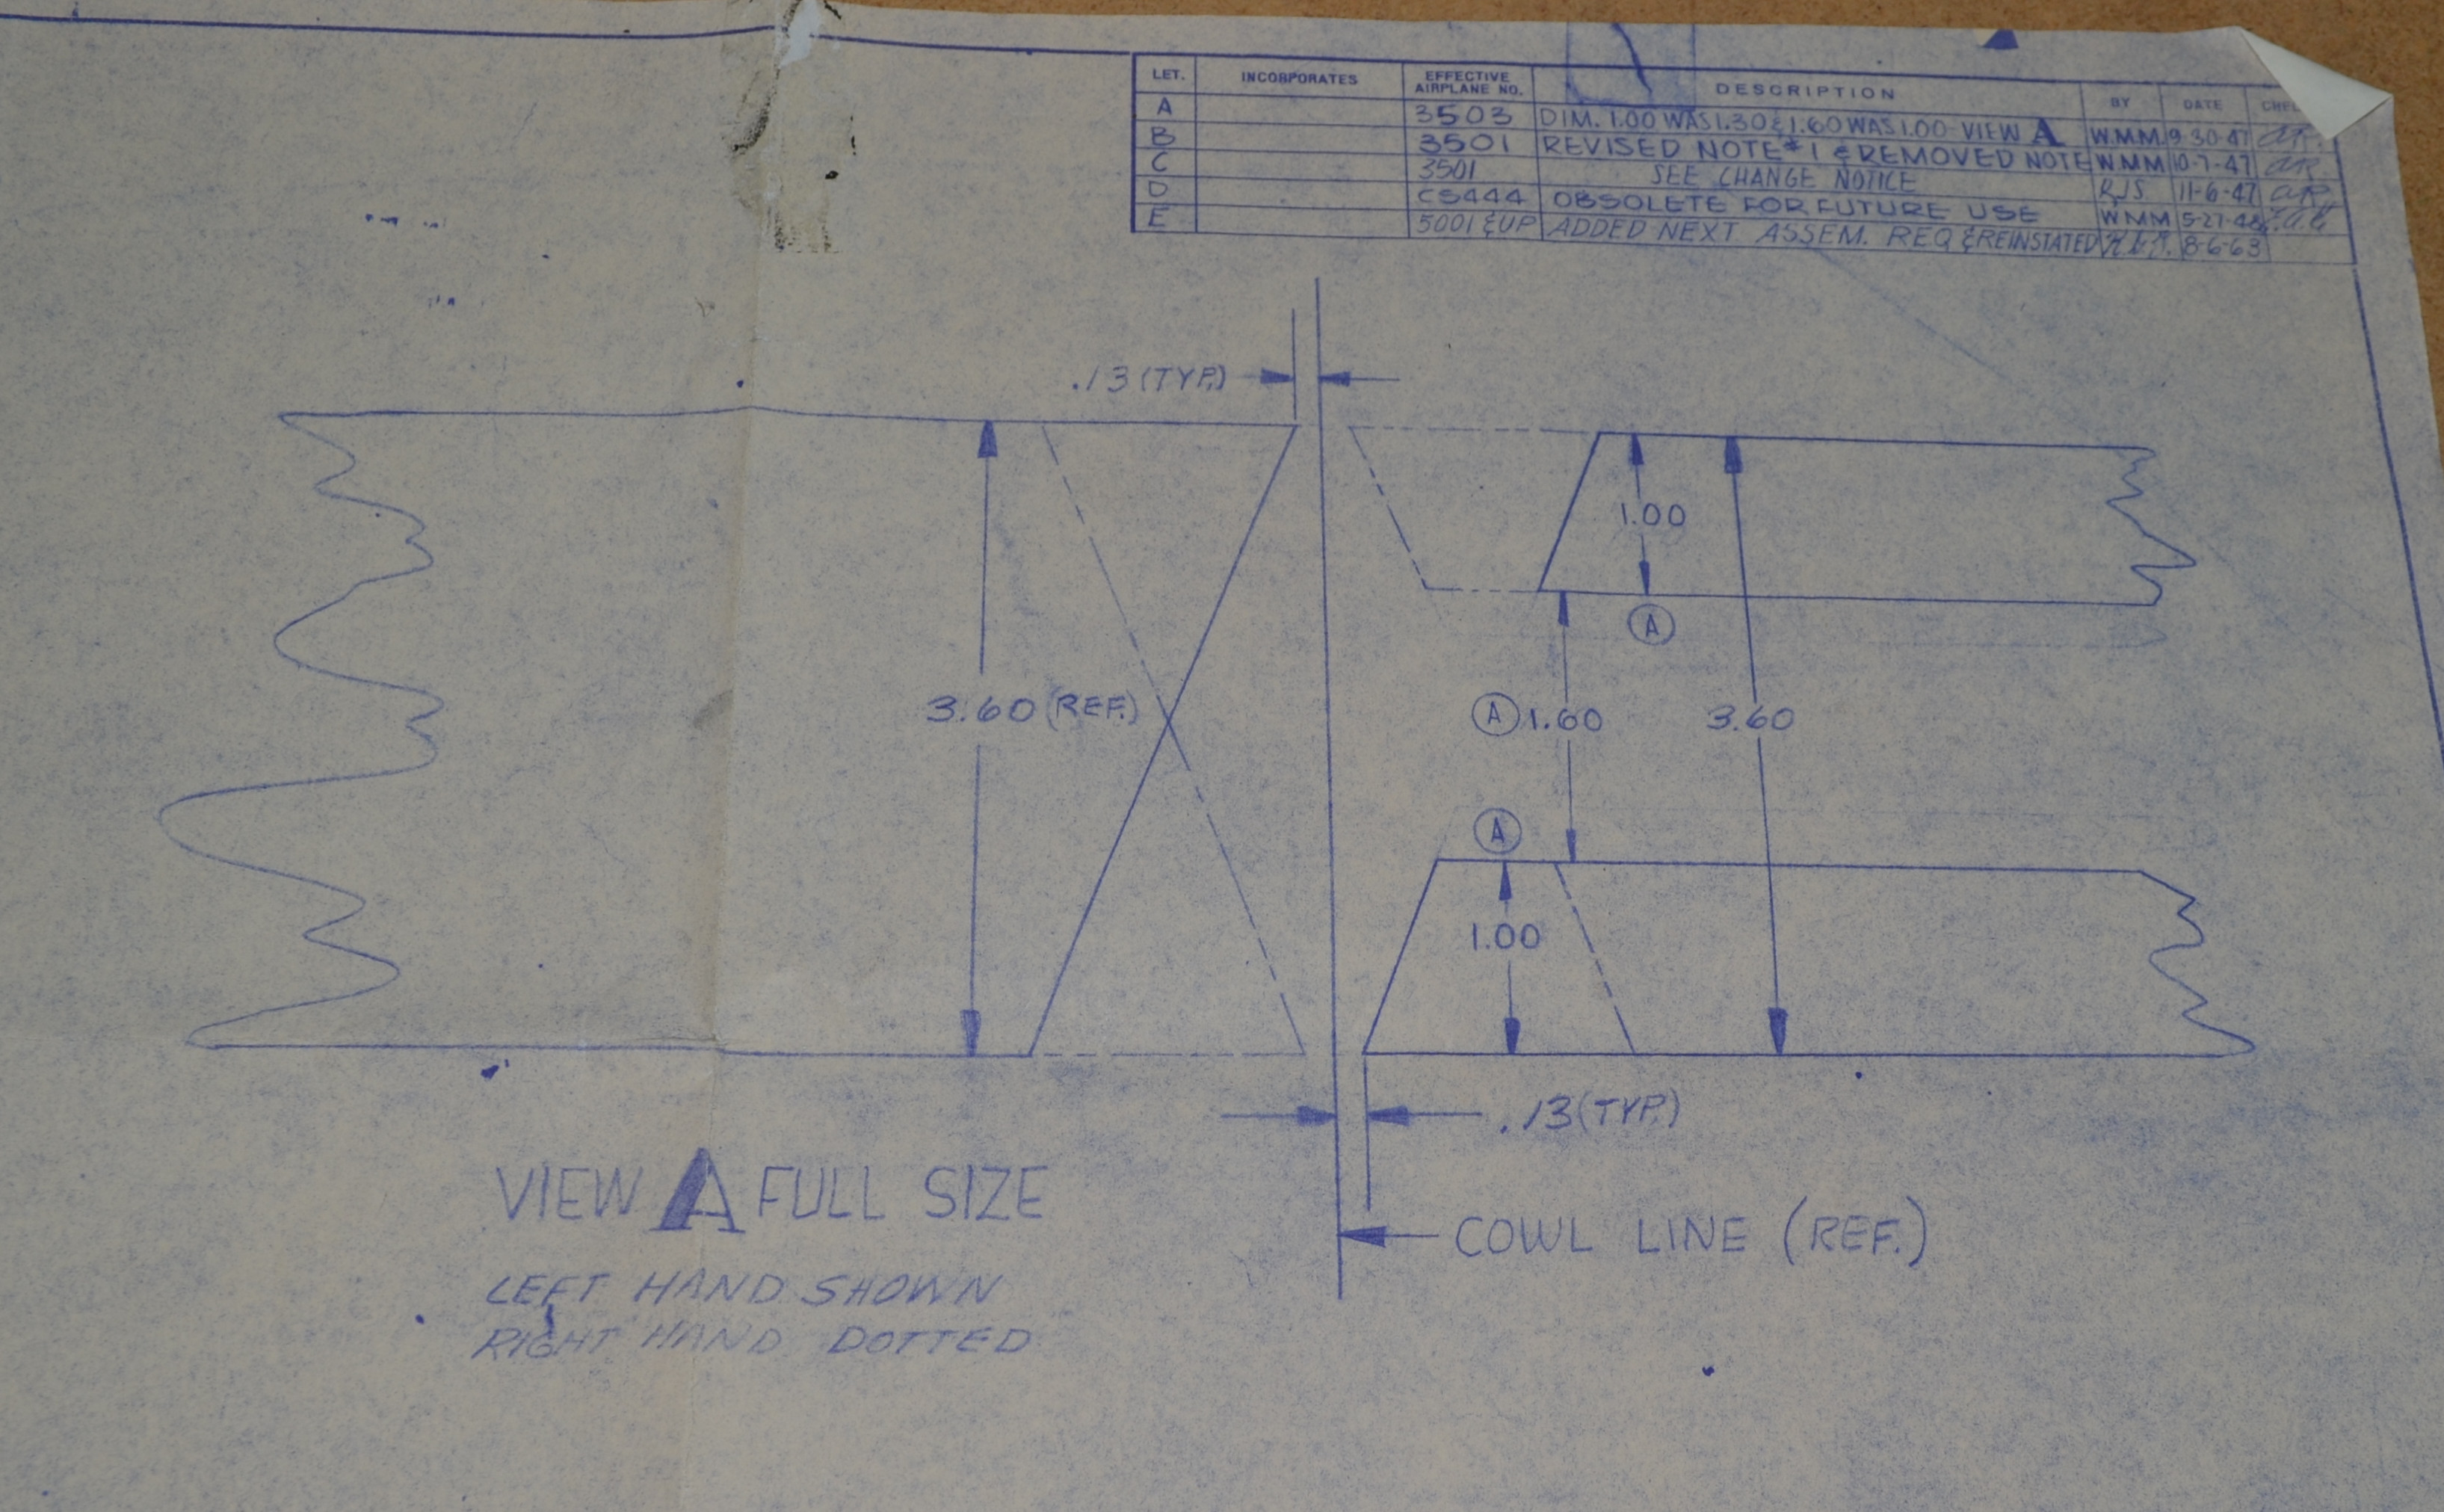 Westins Stinson 108 Page 1940s 3 Way Switch Wiring Diagram Note The Stripe Angle Is Different Between Left And Right Sides Of Airplane About 11m Fourth Part 4 Section B Detail No Lift Lettering On